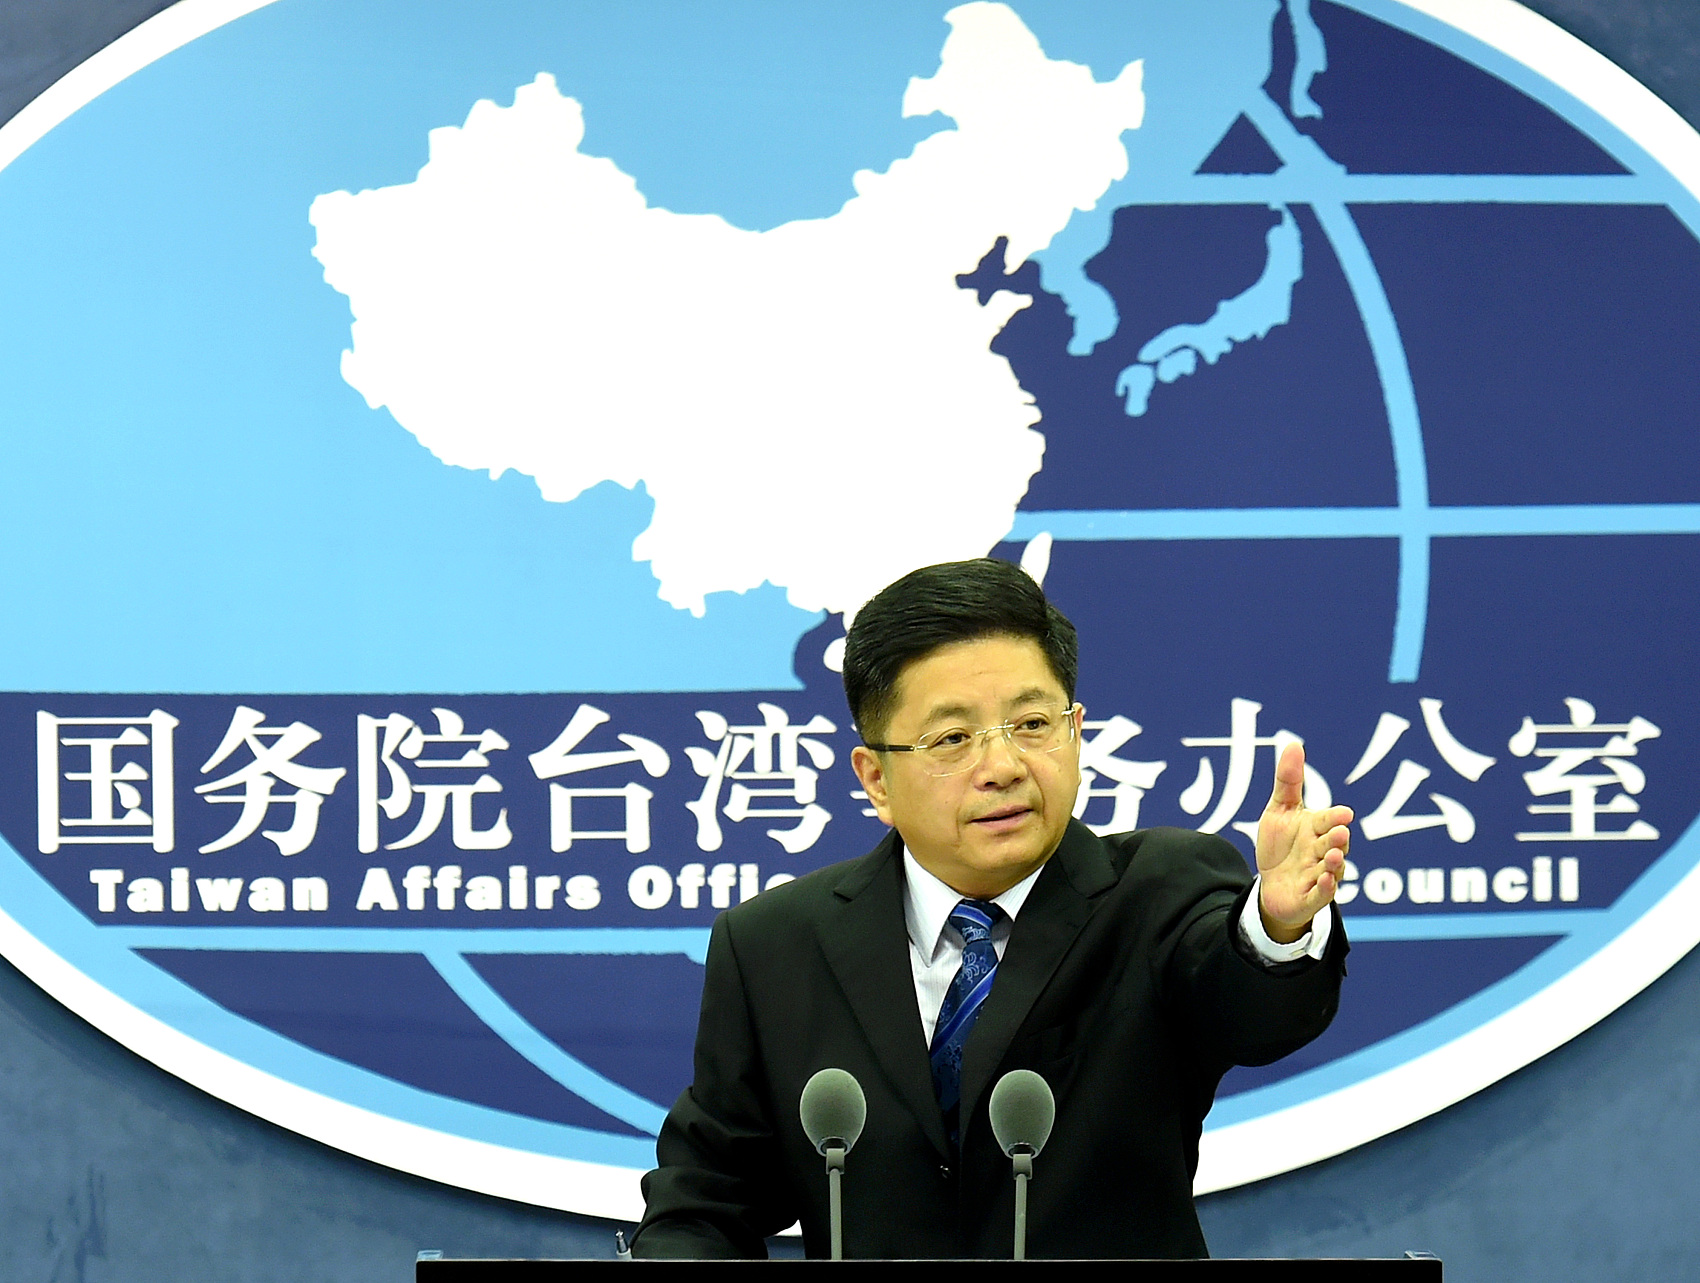 Taiwan can only improve relations with mainland by adhering to 1992 Consensus: spokesperson